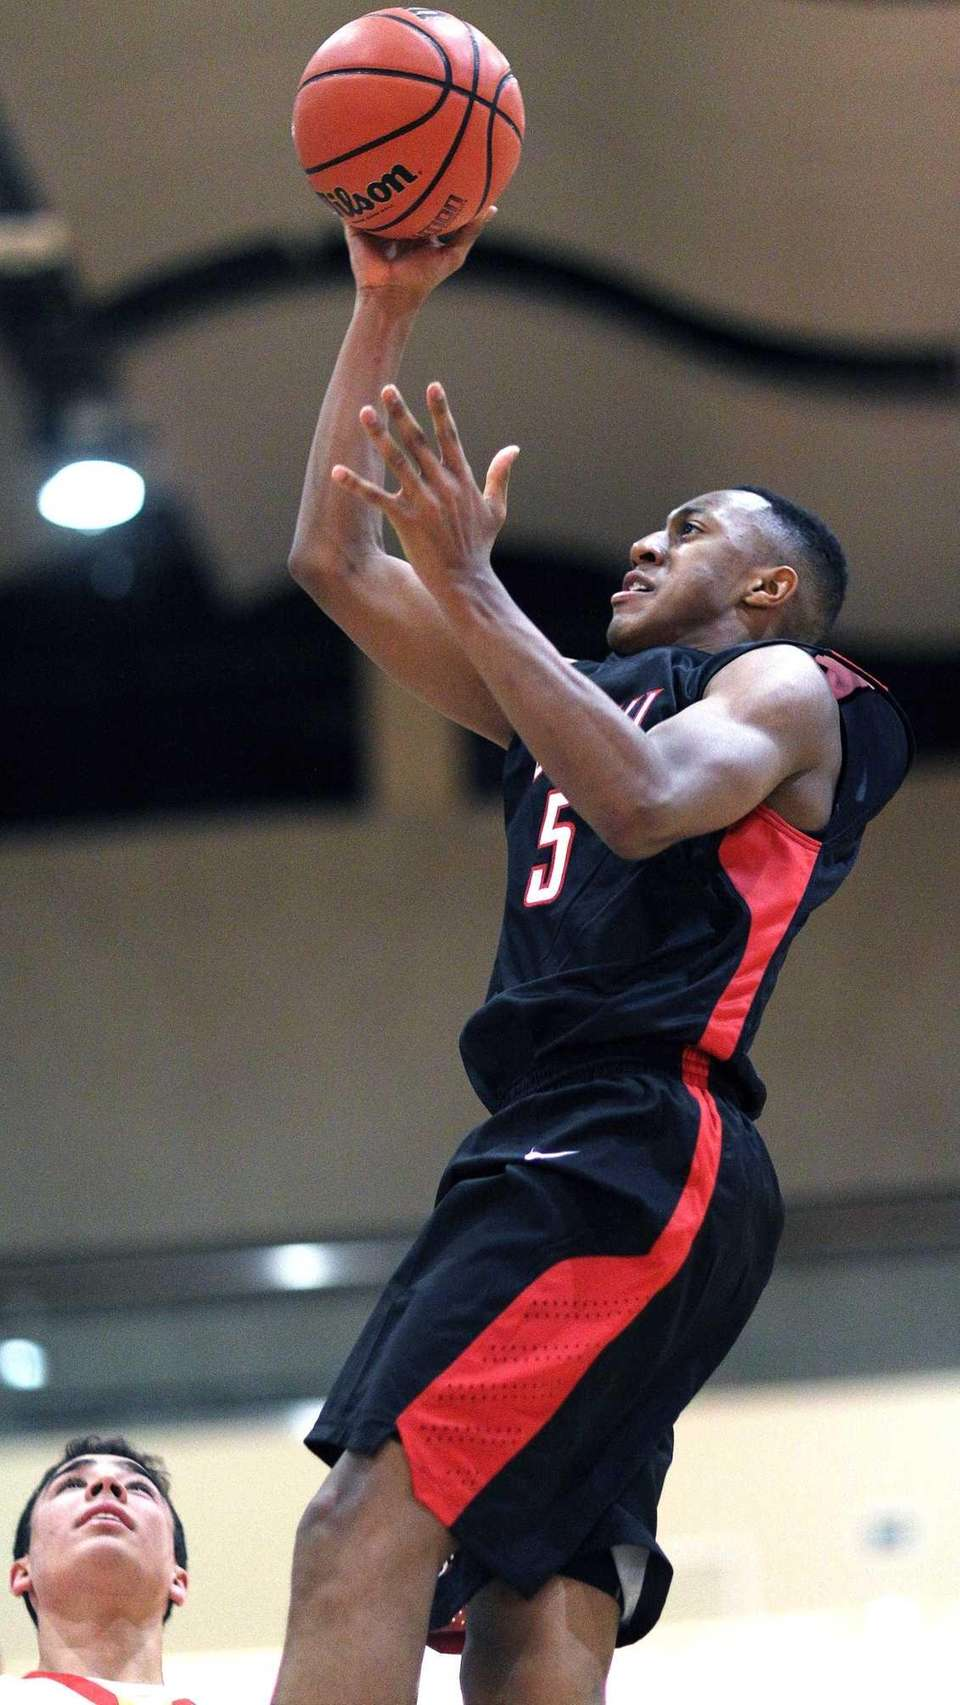 Lutheran's Elijah Bailey takes the shot during a